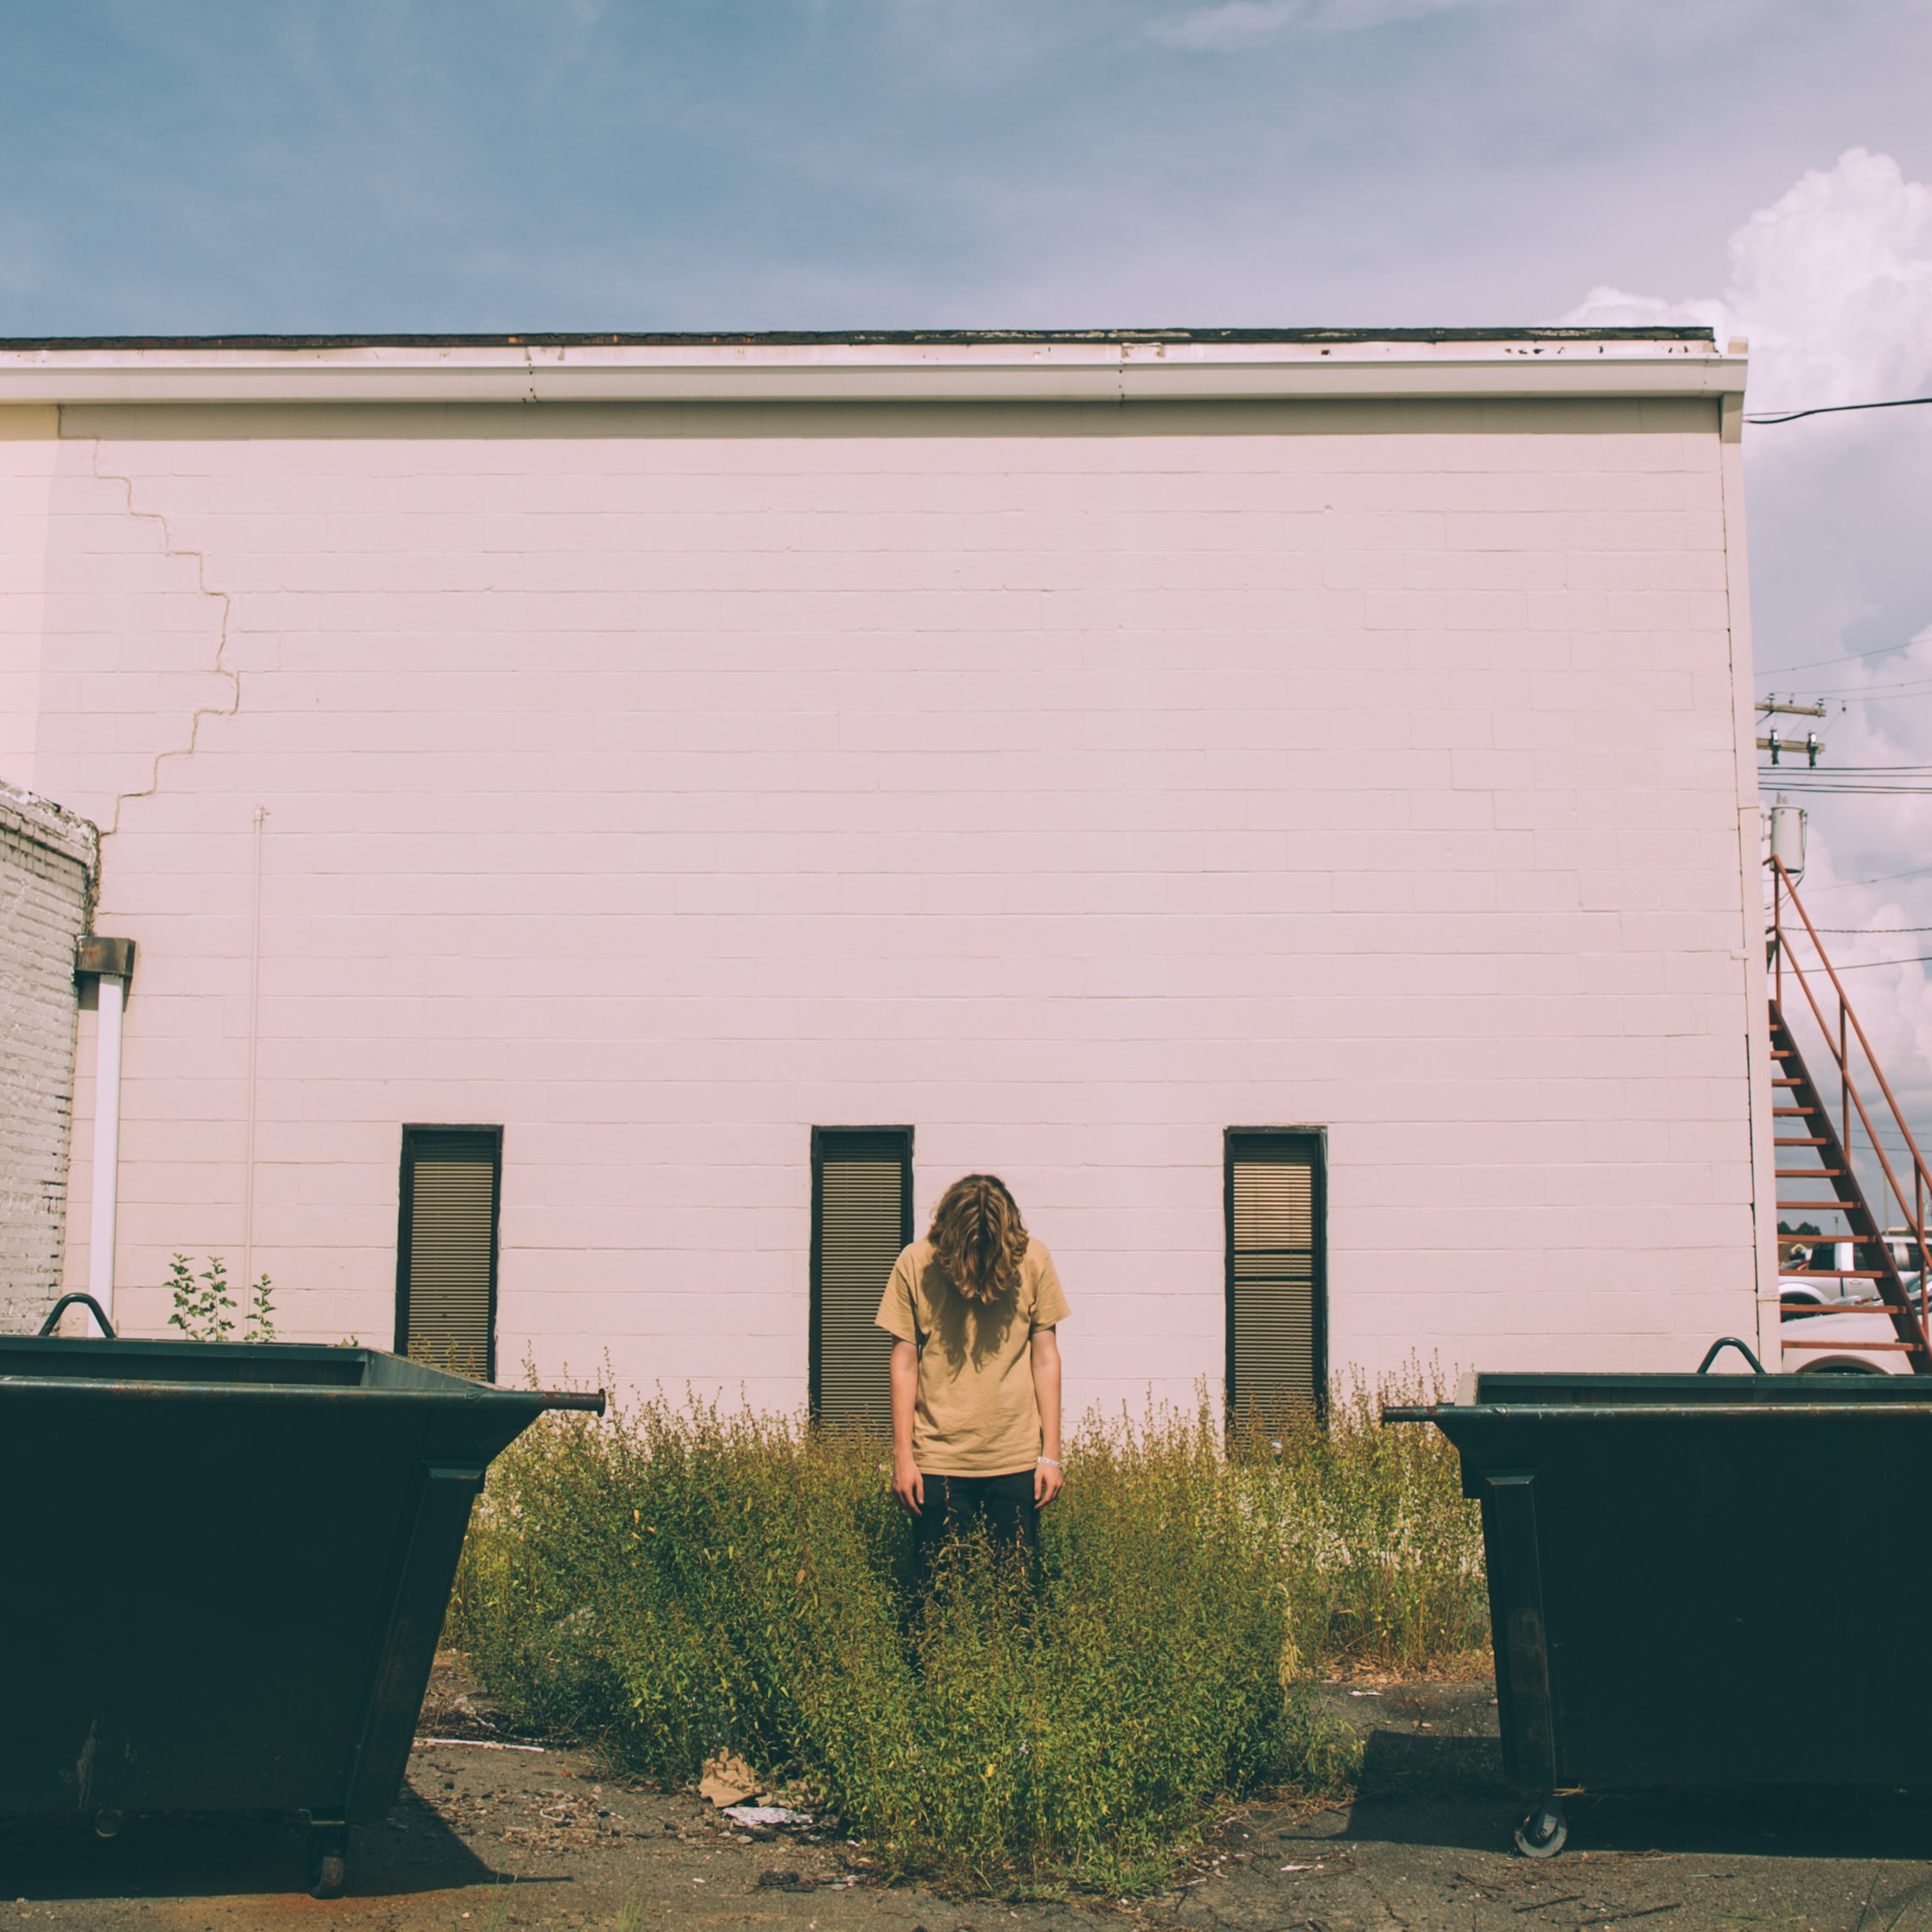 person standing near white concrete building during daytime